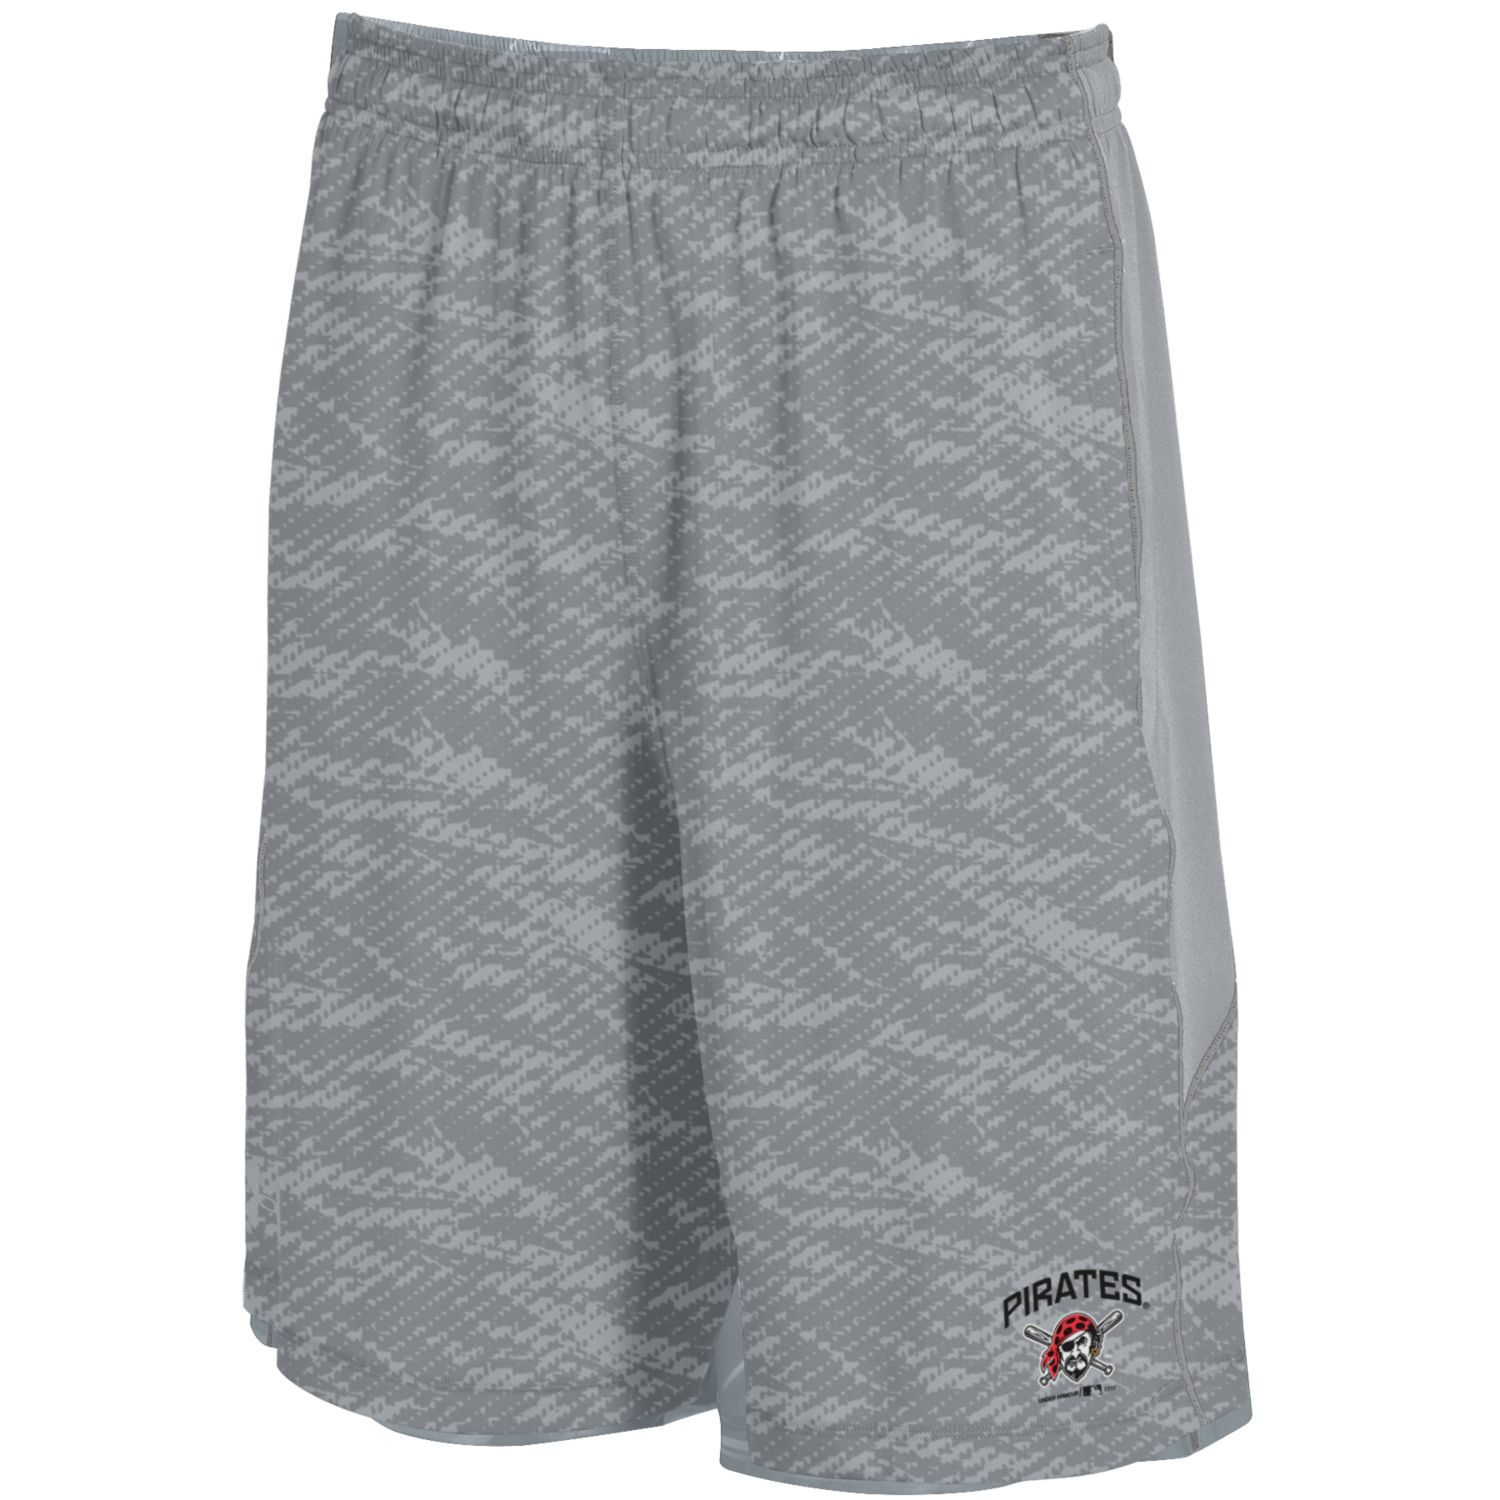 Pittsburgh Pirates Under Armour Raid Novelty Shorts - Steel